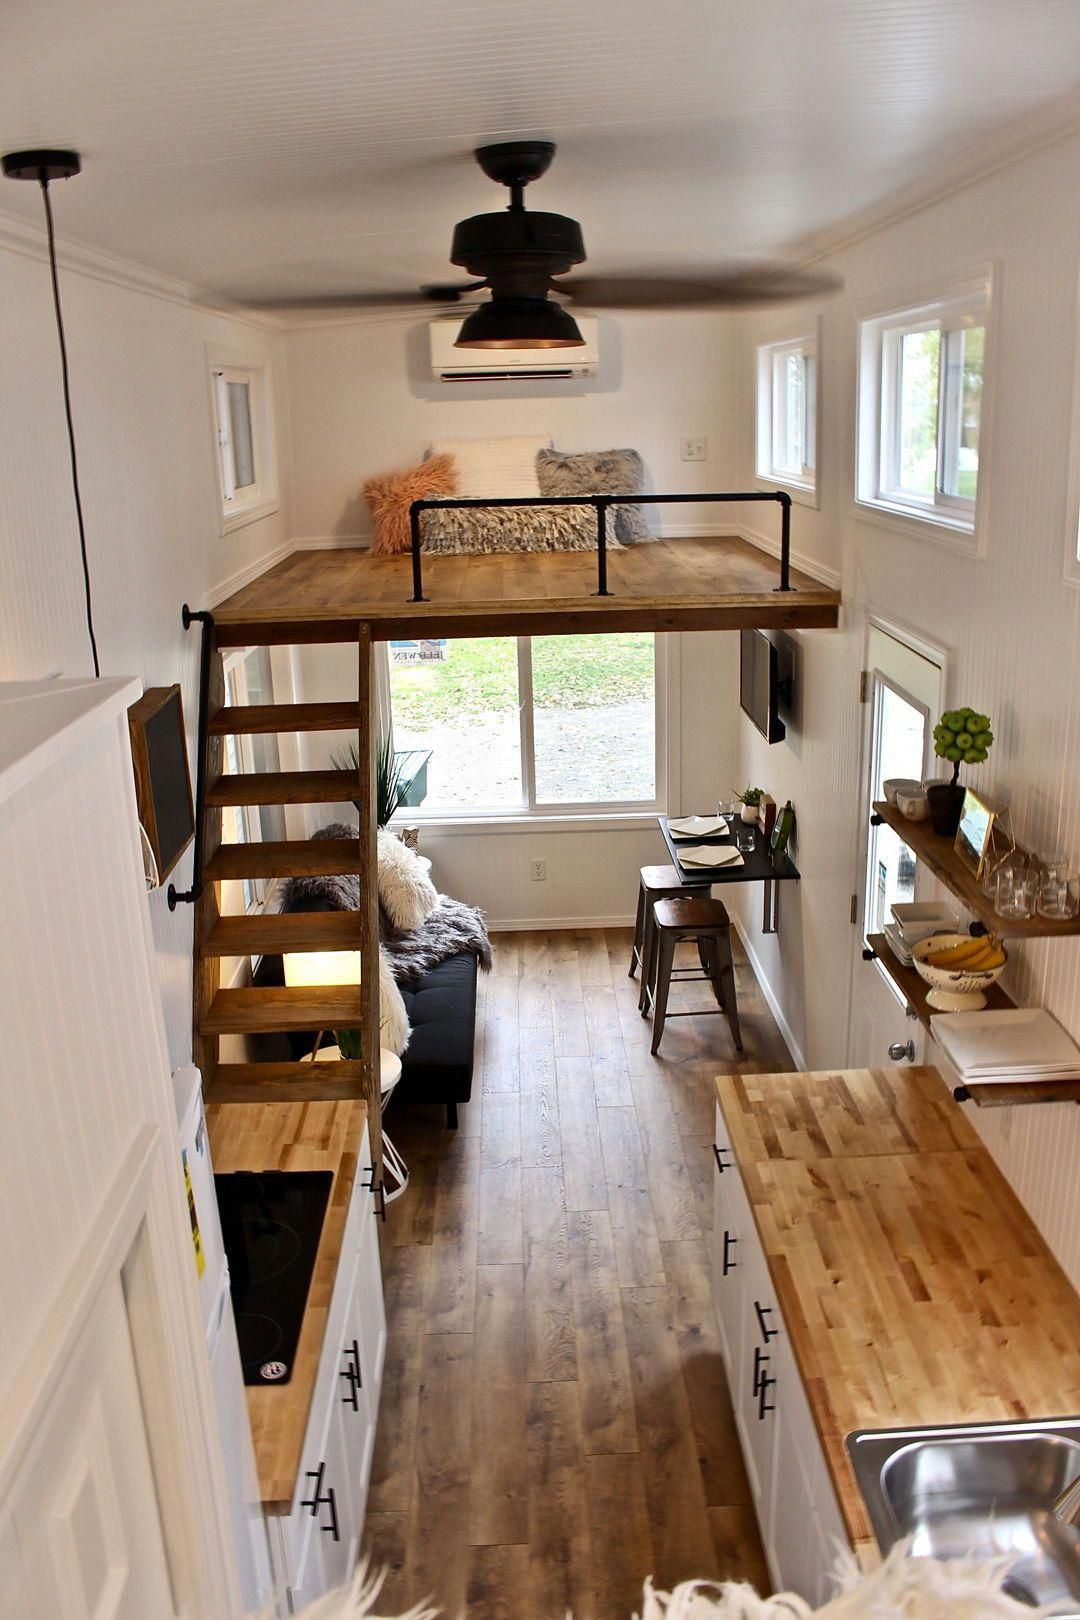 Decorate My Living Room Front Room Decorating Designs Modern Interior Design Ideas 20190328 Tiny House Interior Design Best Tiny House Tiny House Interior